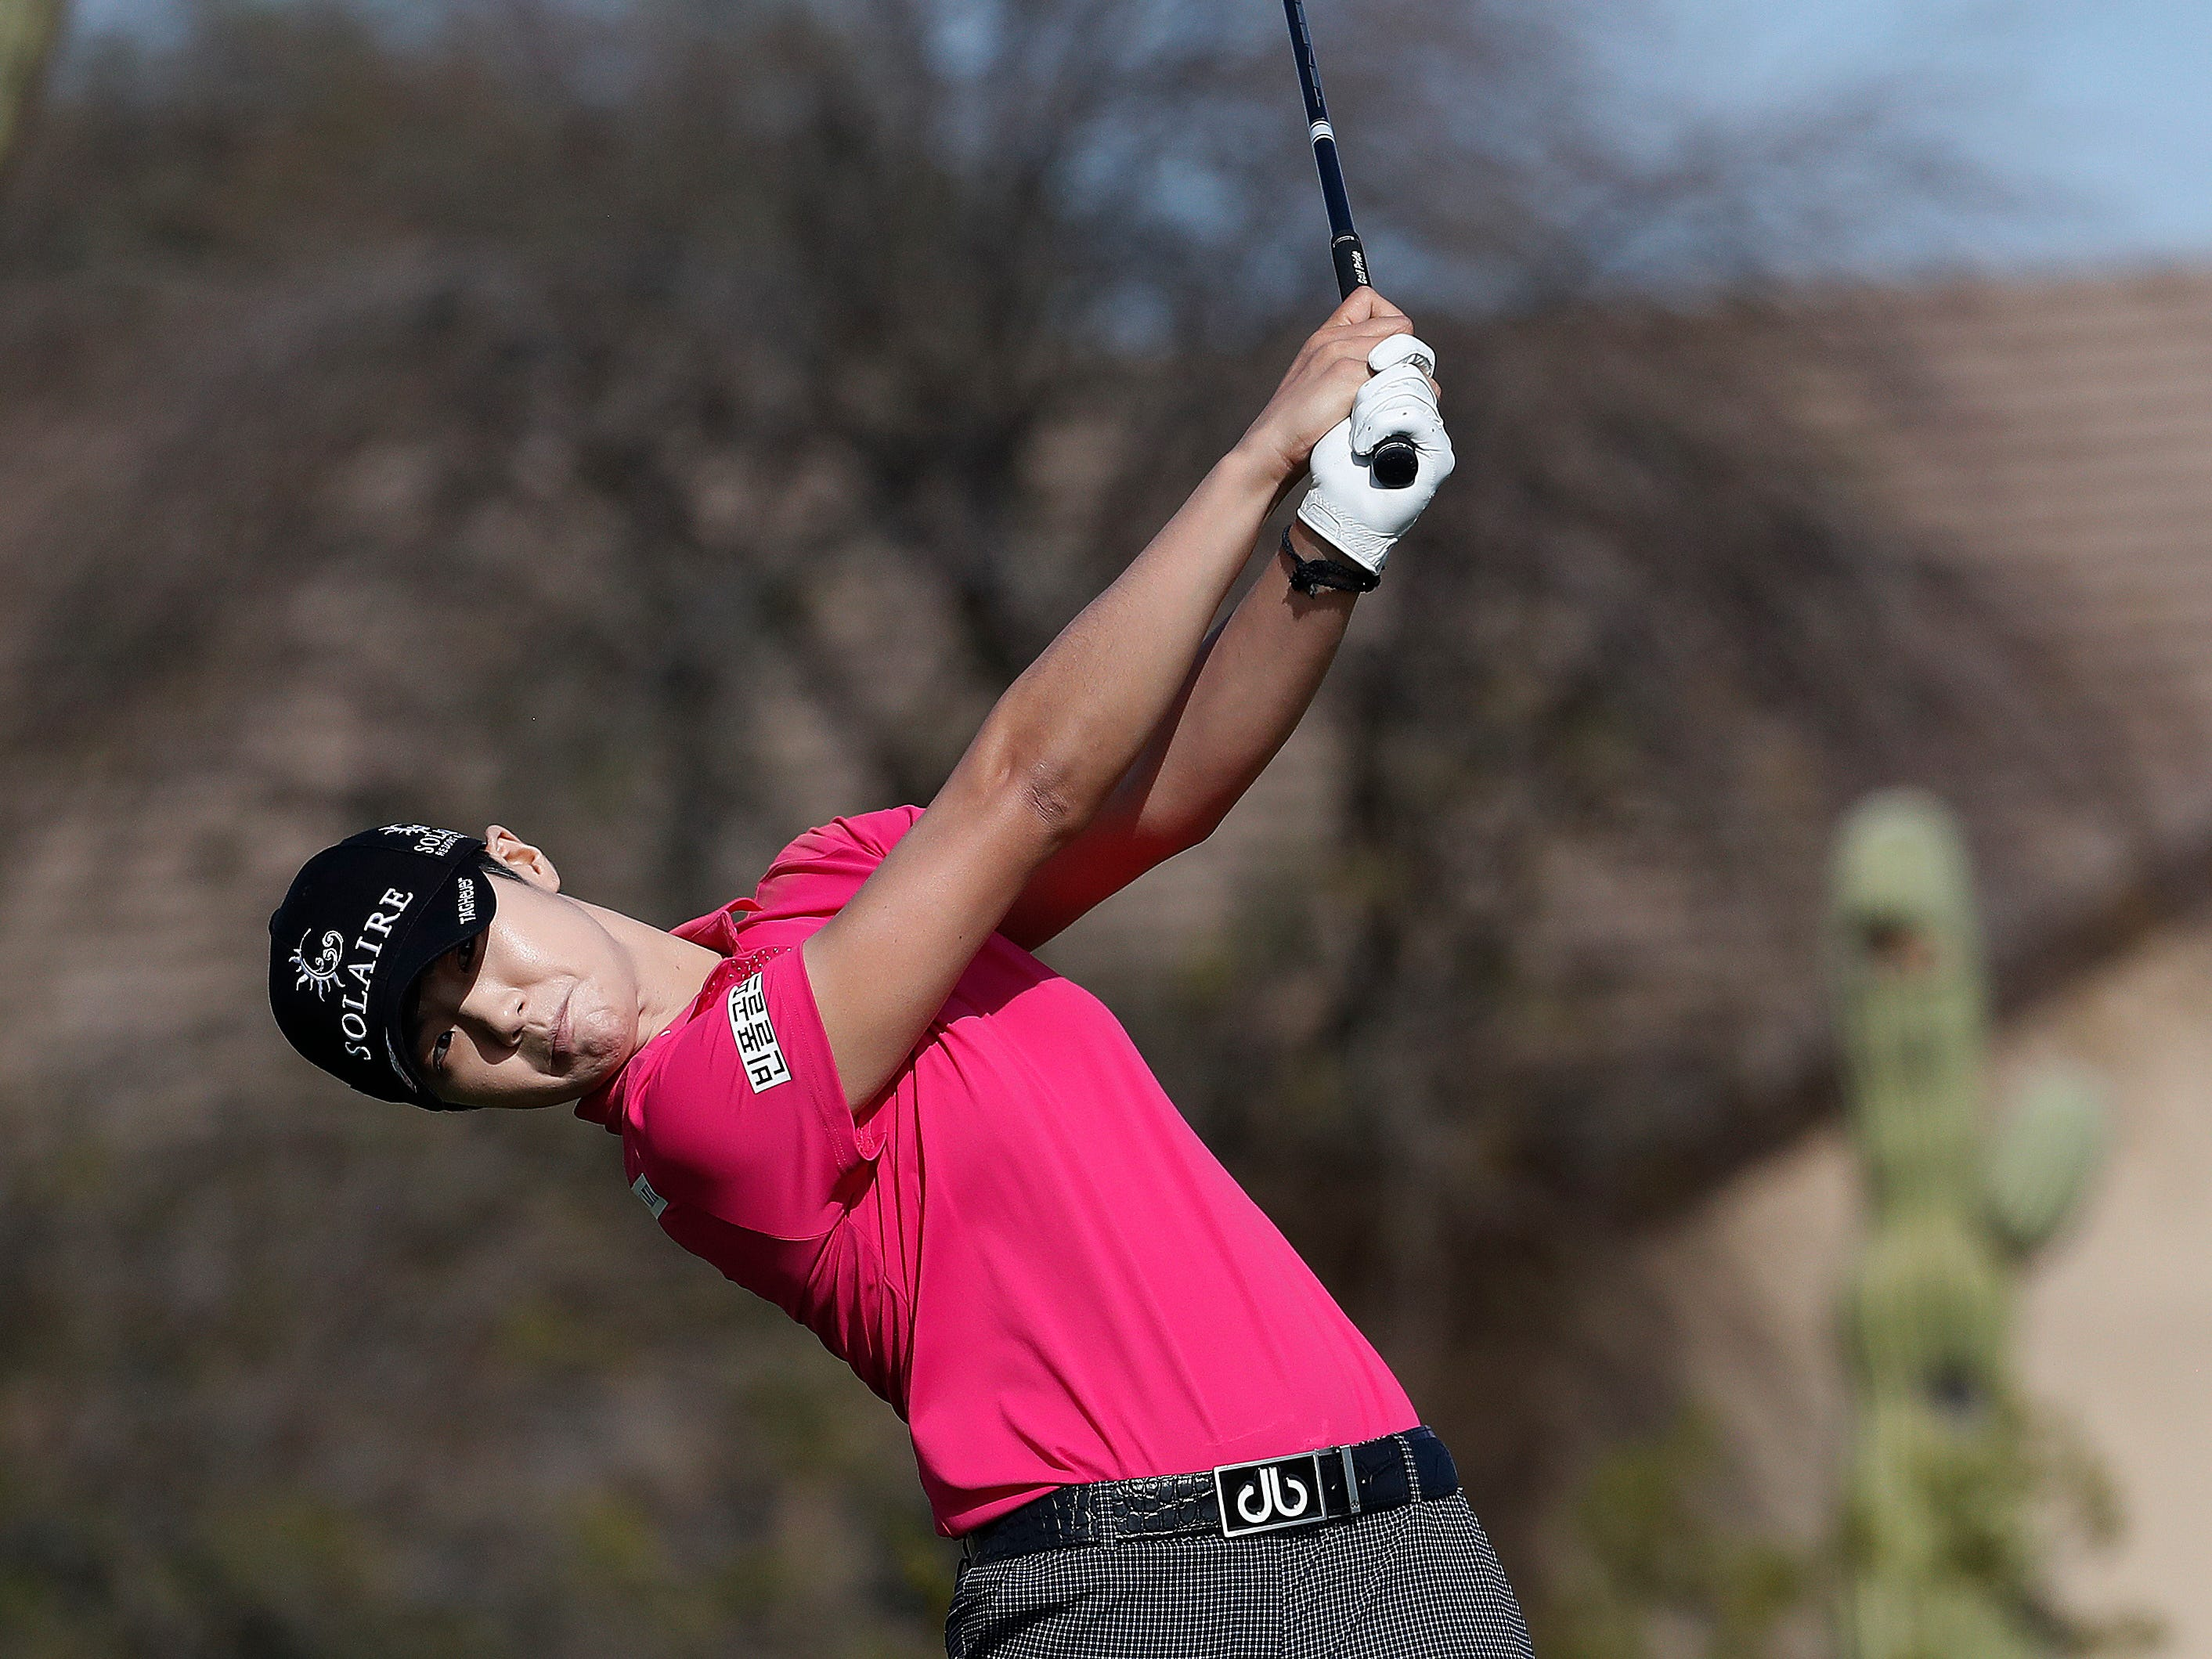 Sung Hyun Park hits from the eighth tee during the third round of the Founders Cup LPGA golf tournament Saturday, March 23, 2019, in Phoenix.